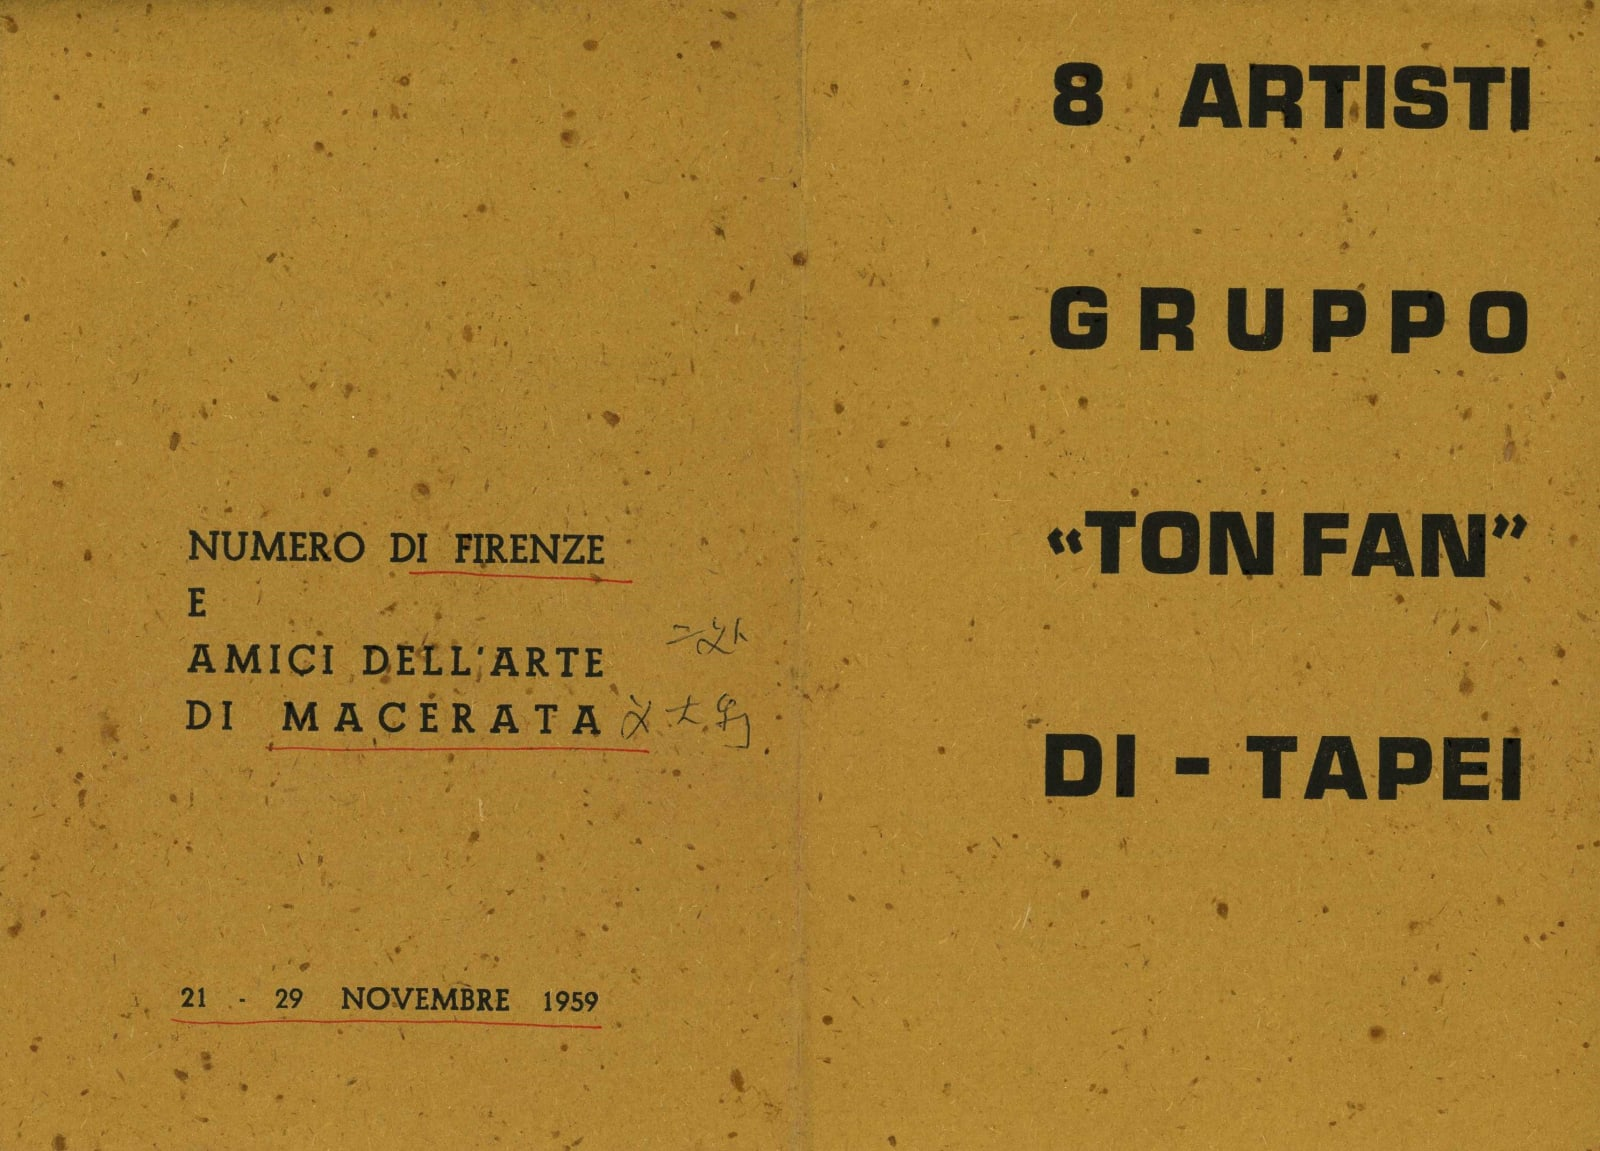 Nov 1959, Ton-Fan Art Group Painting Exhibition in Italy 1959年11月「東方畫展」於義大利展出